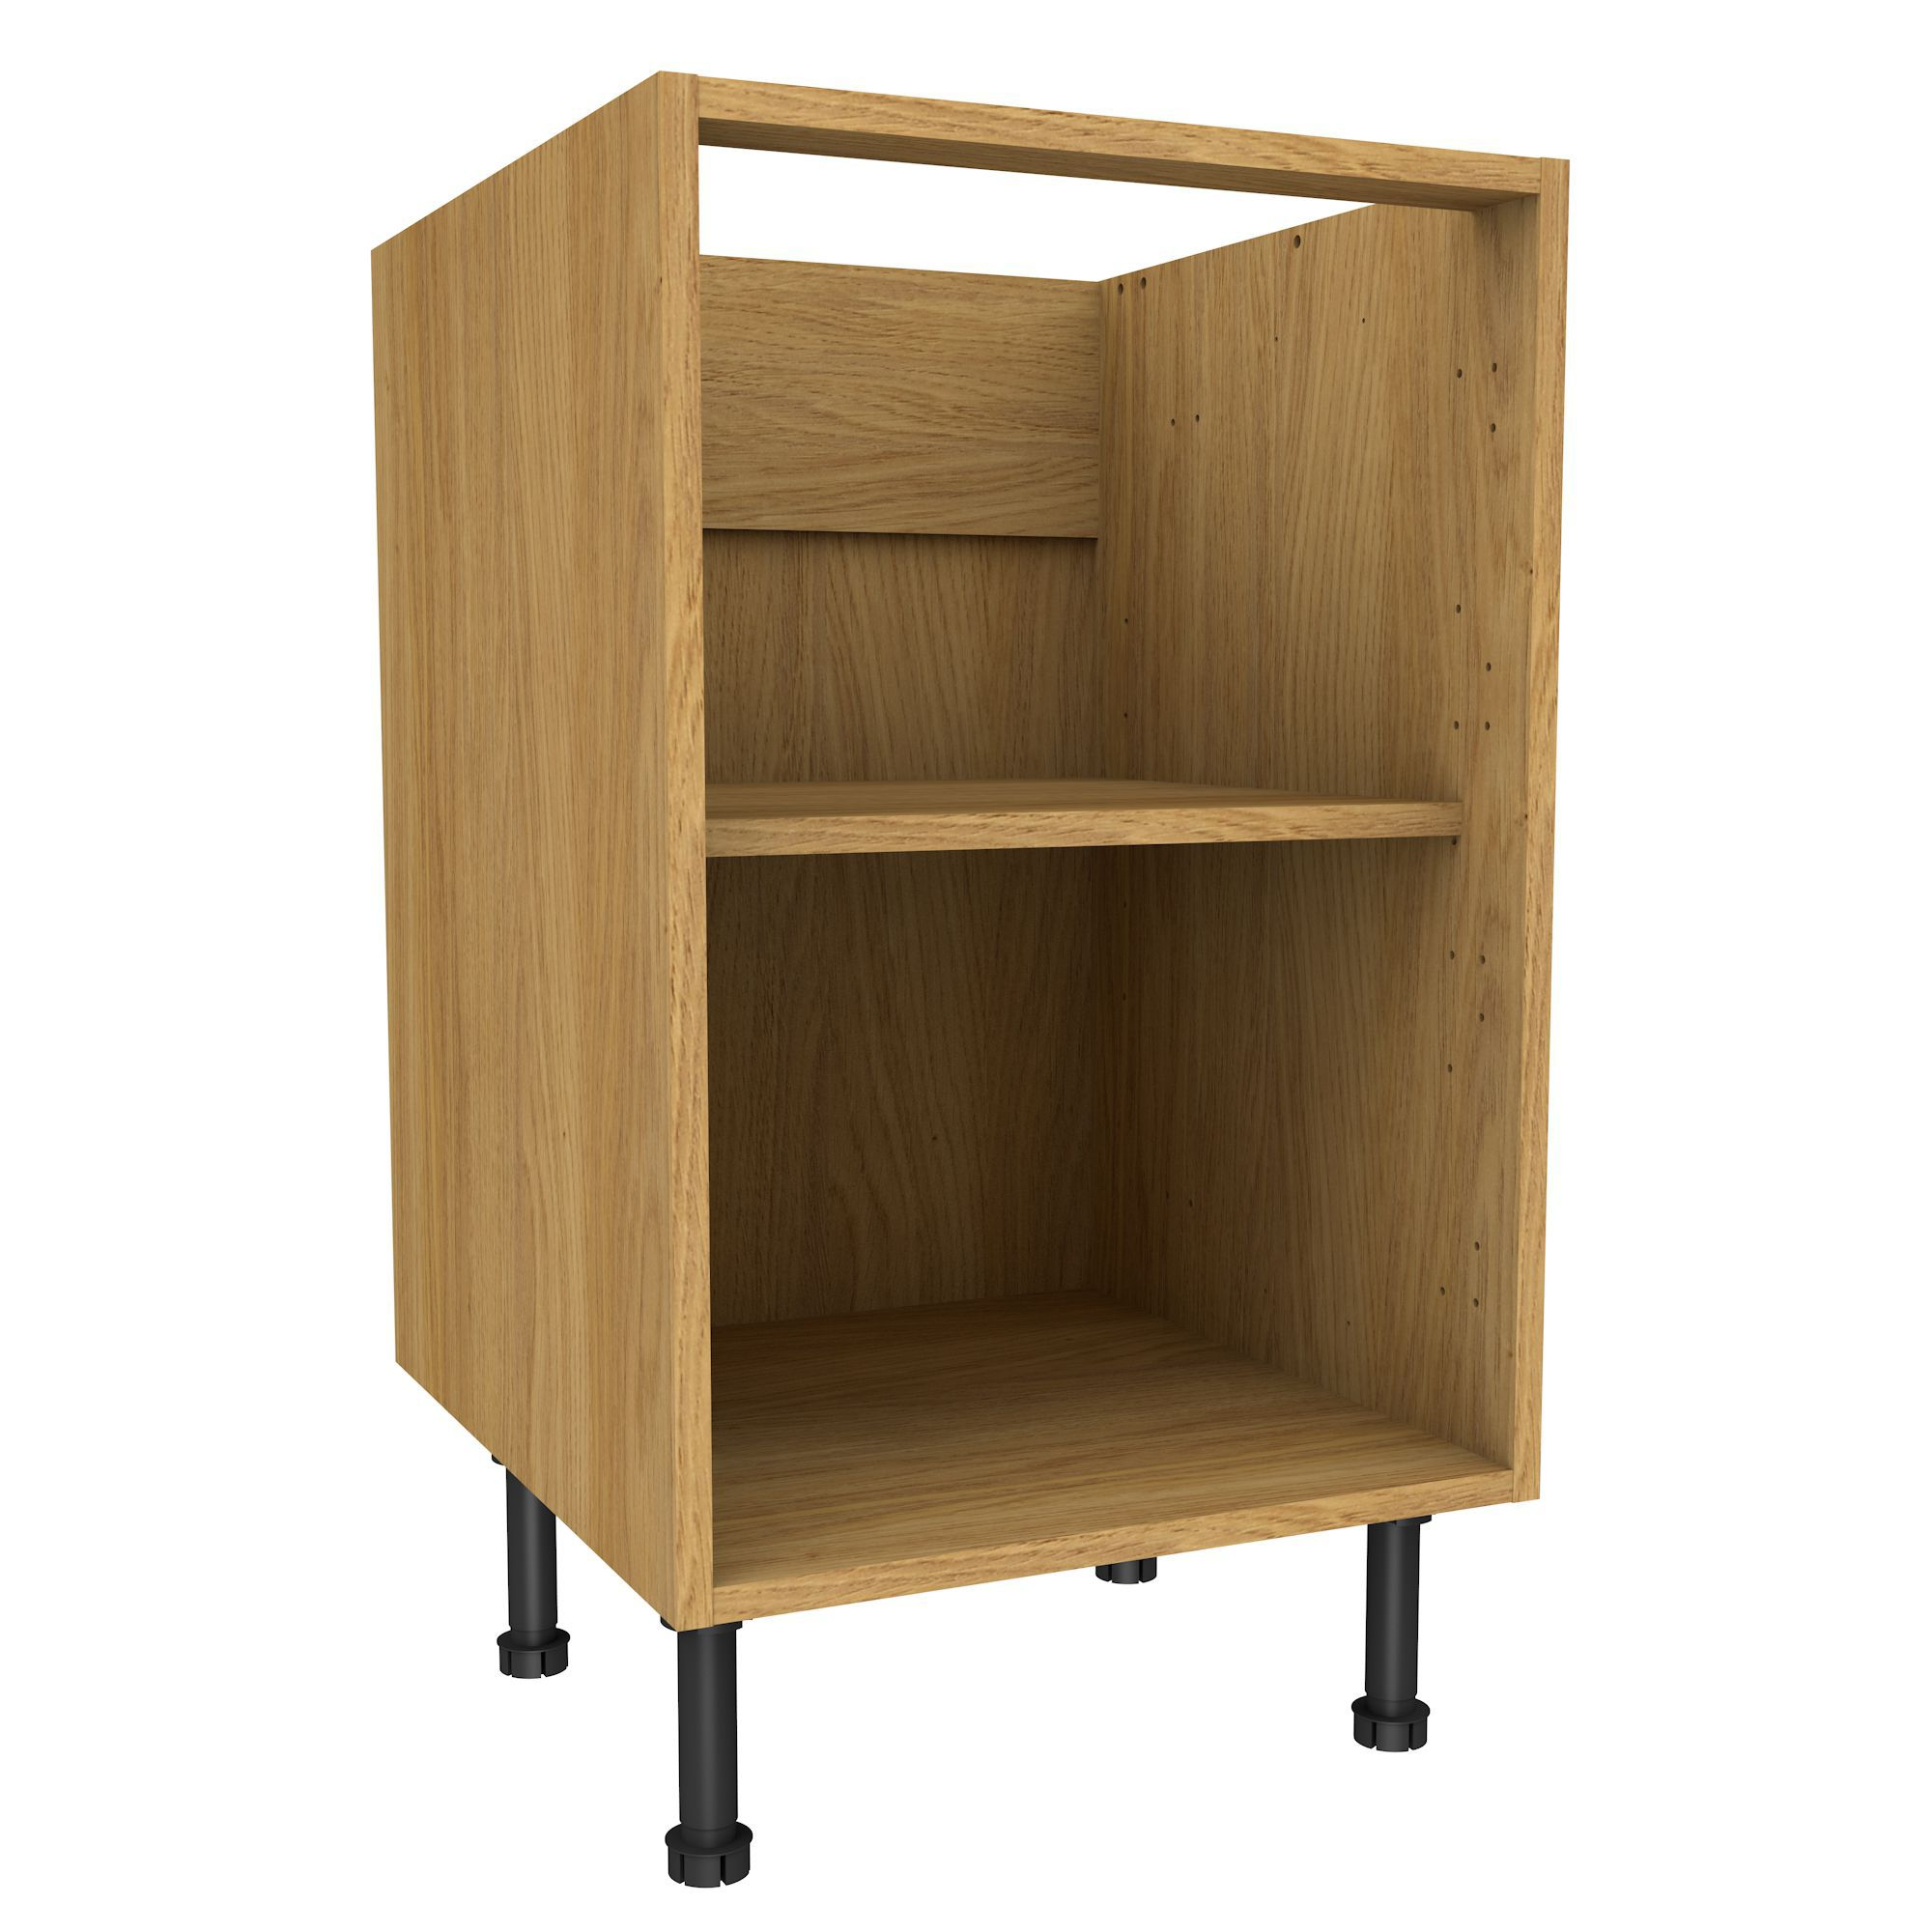 Oak Effect Kitchen Cabinets: Cooke & Lewis Oak Effect Standard Base Cabinet (W)500mm